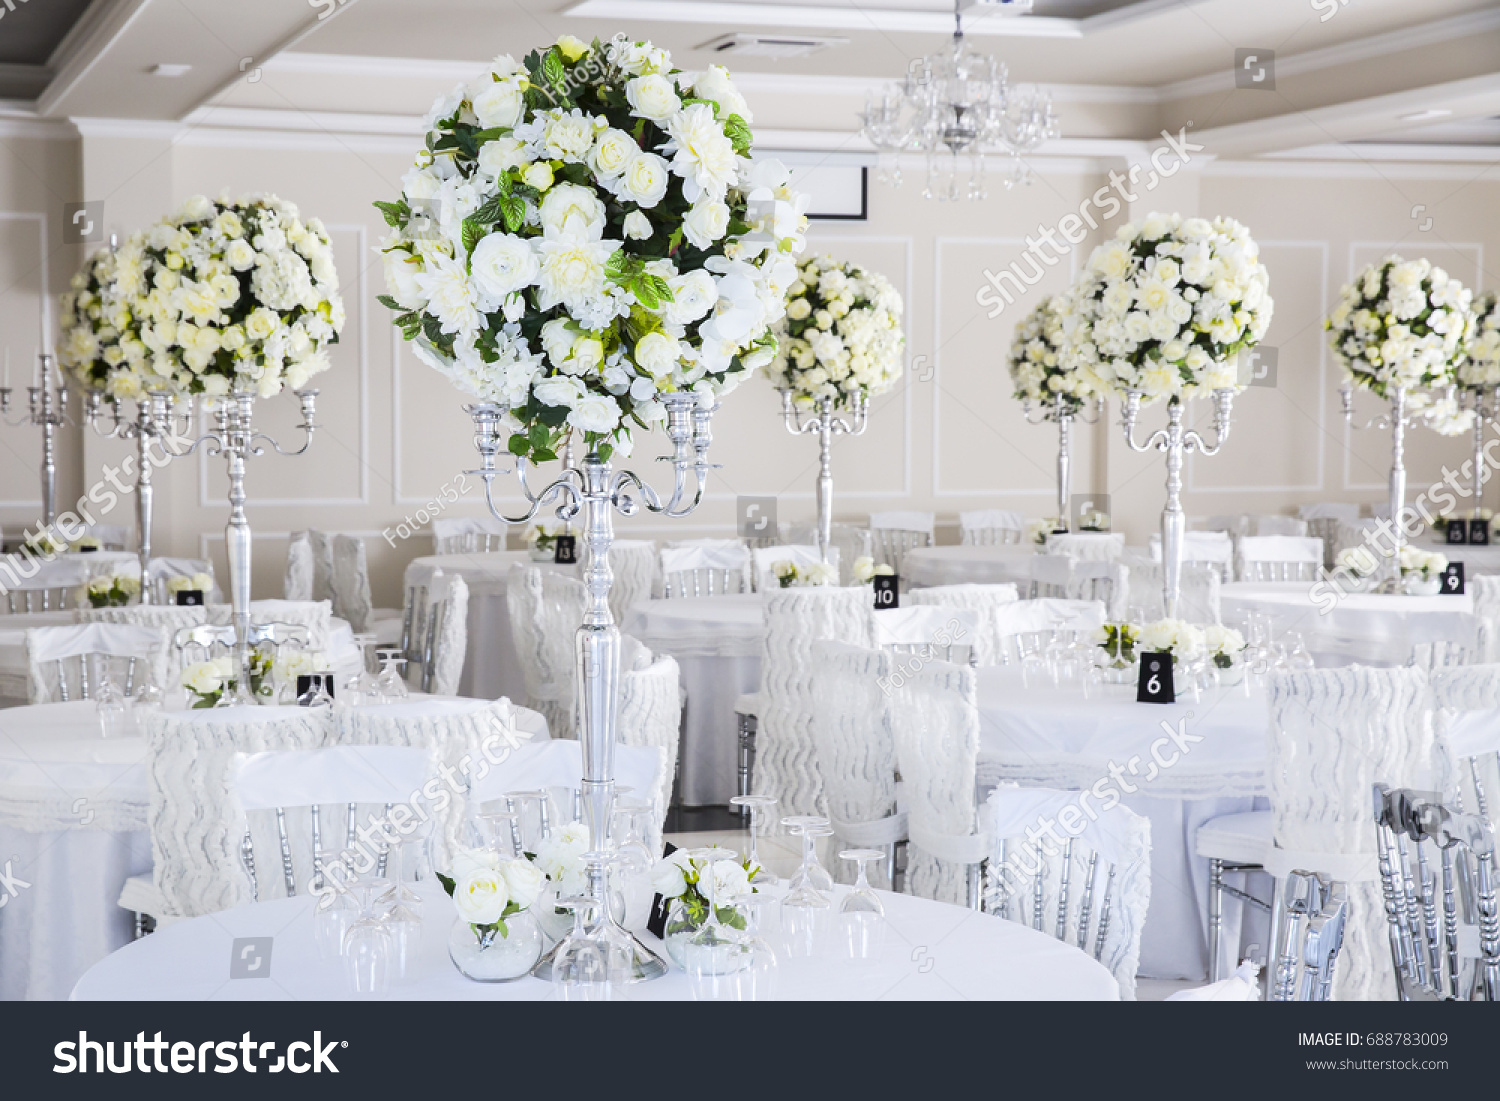 Elegant Wedding Reception Table Arrangement Floral Stock Photo ...